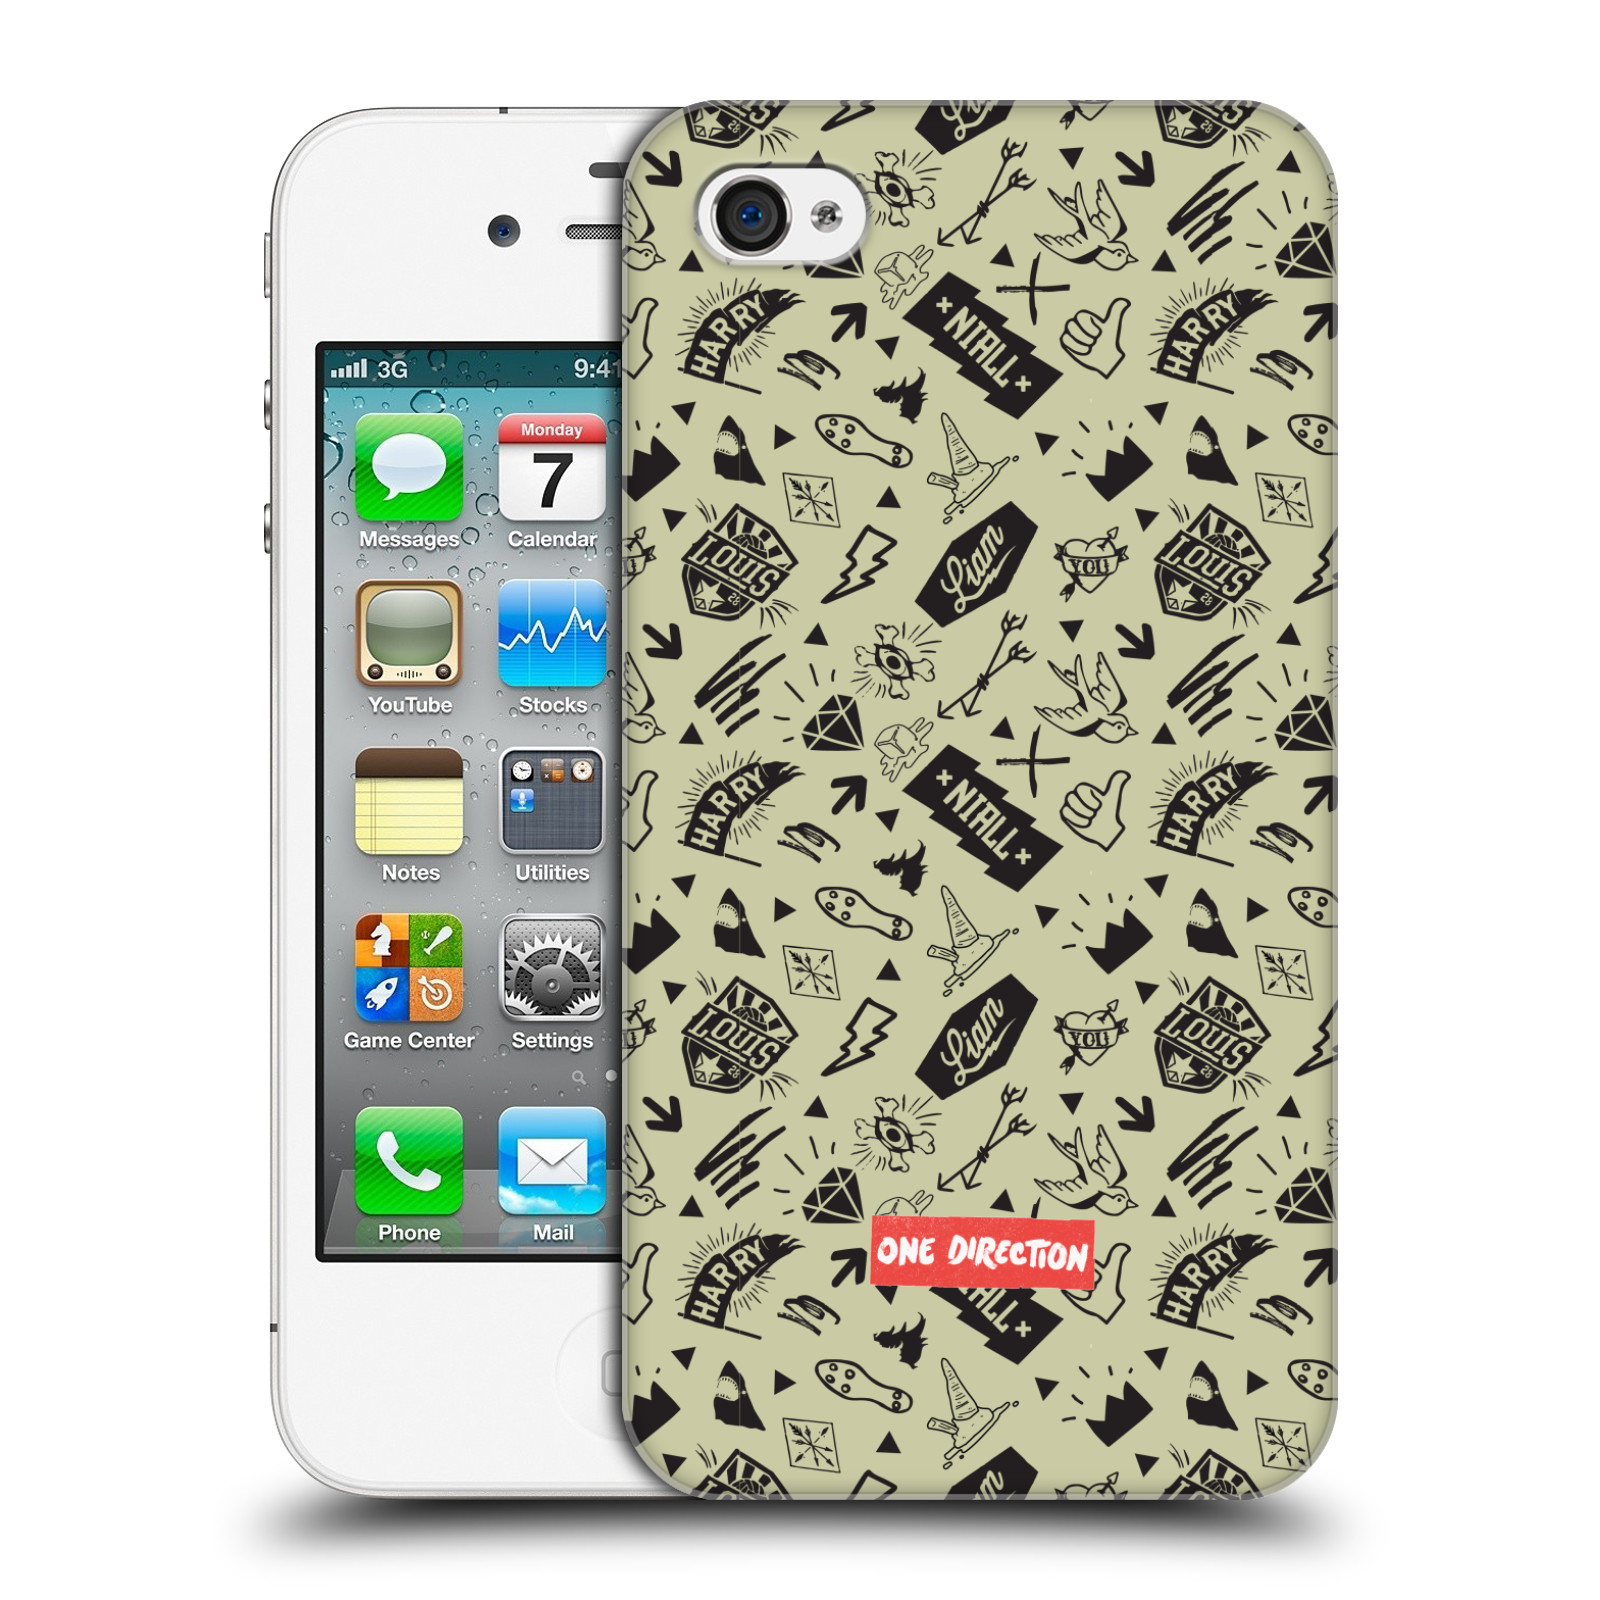 Ufficiale-One-Direction-1D-icona-PATTERNS-HARD-BACK-CASE-per-APPLE-IPHONE-4S